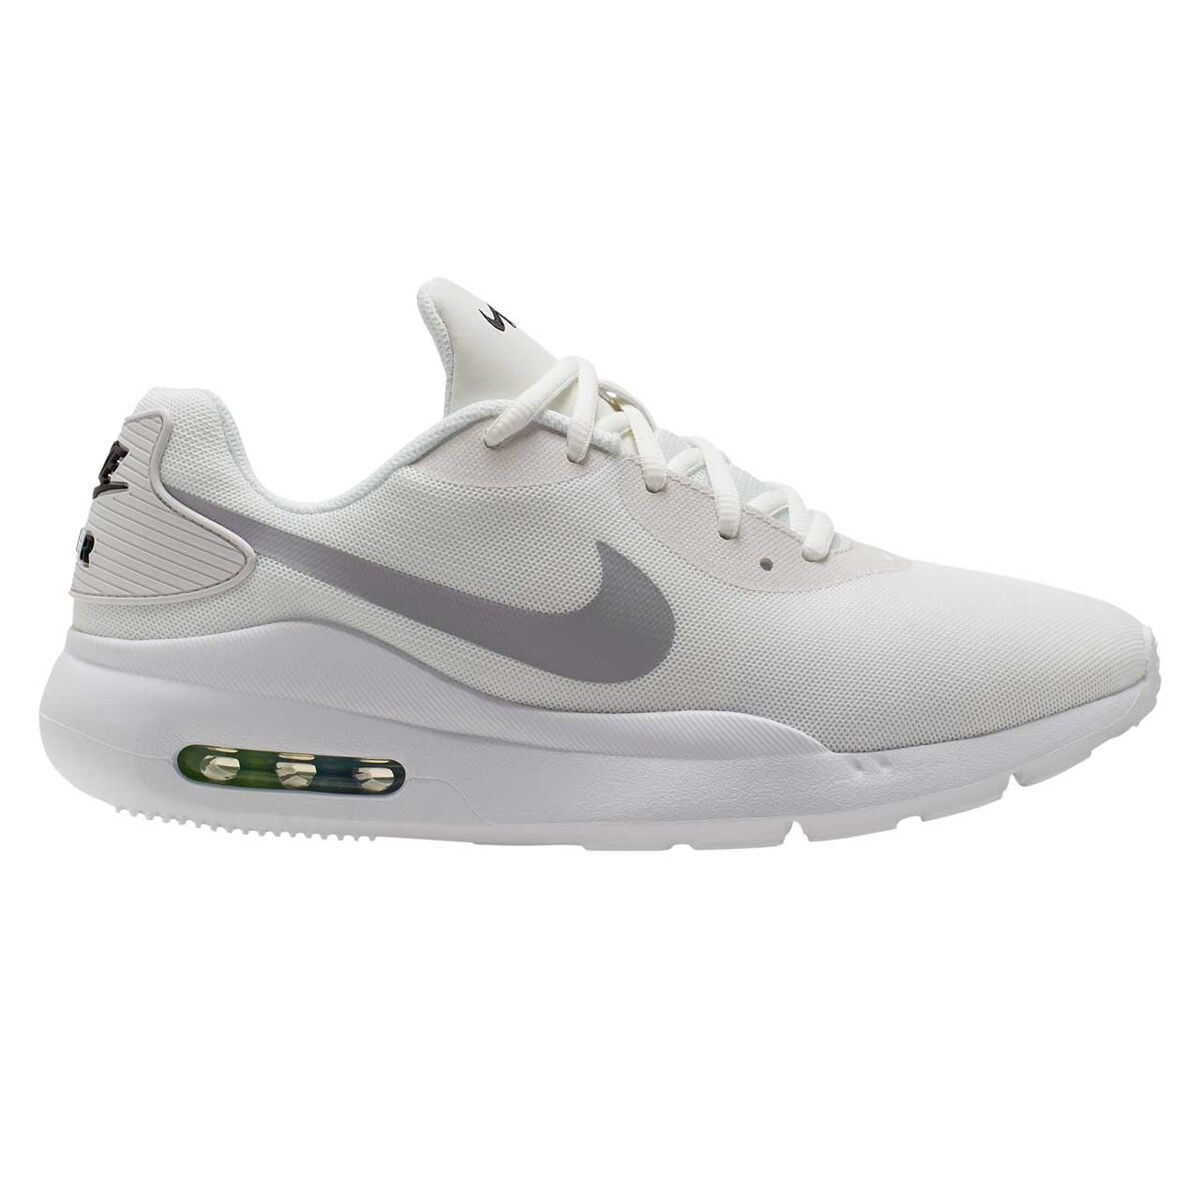 men's casual nike shoes white